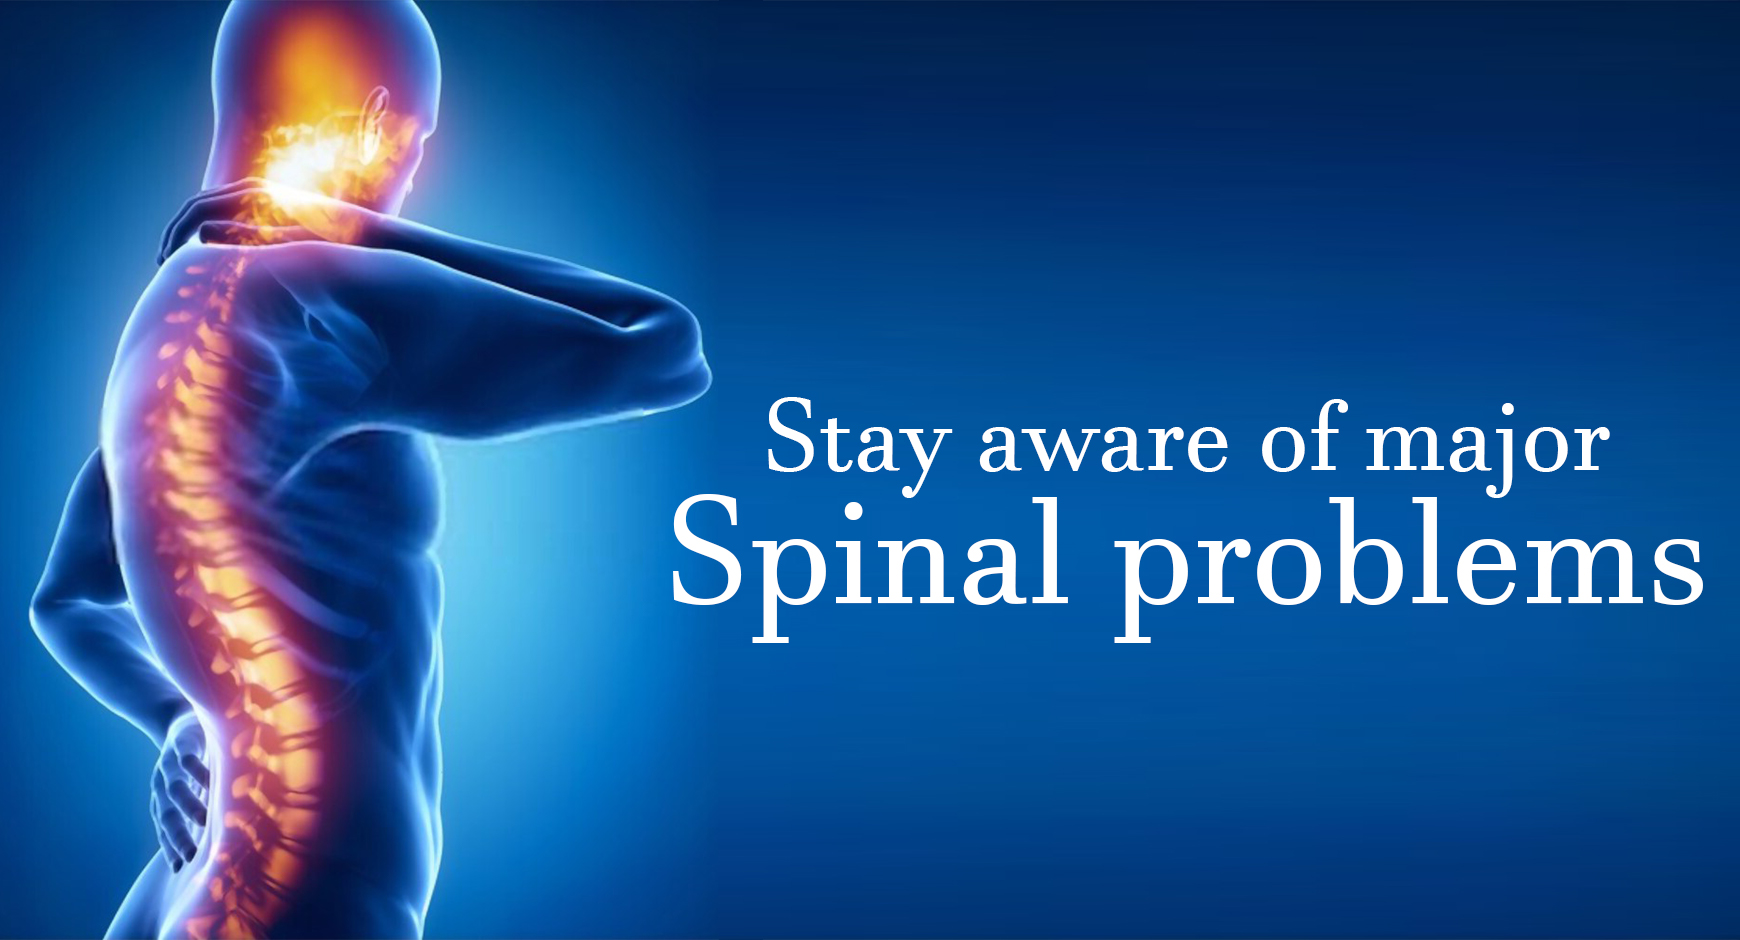 Stay aware of major spinal problems